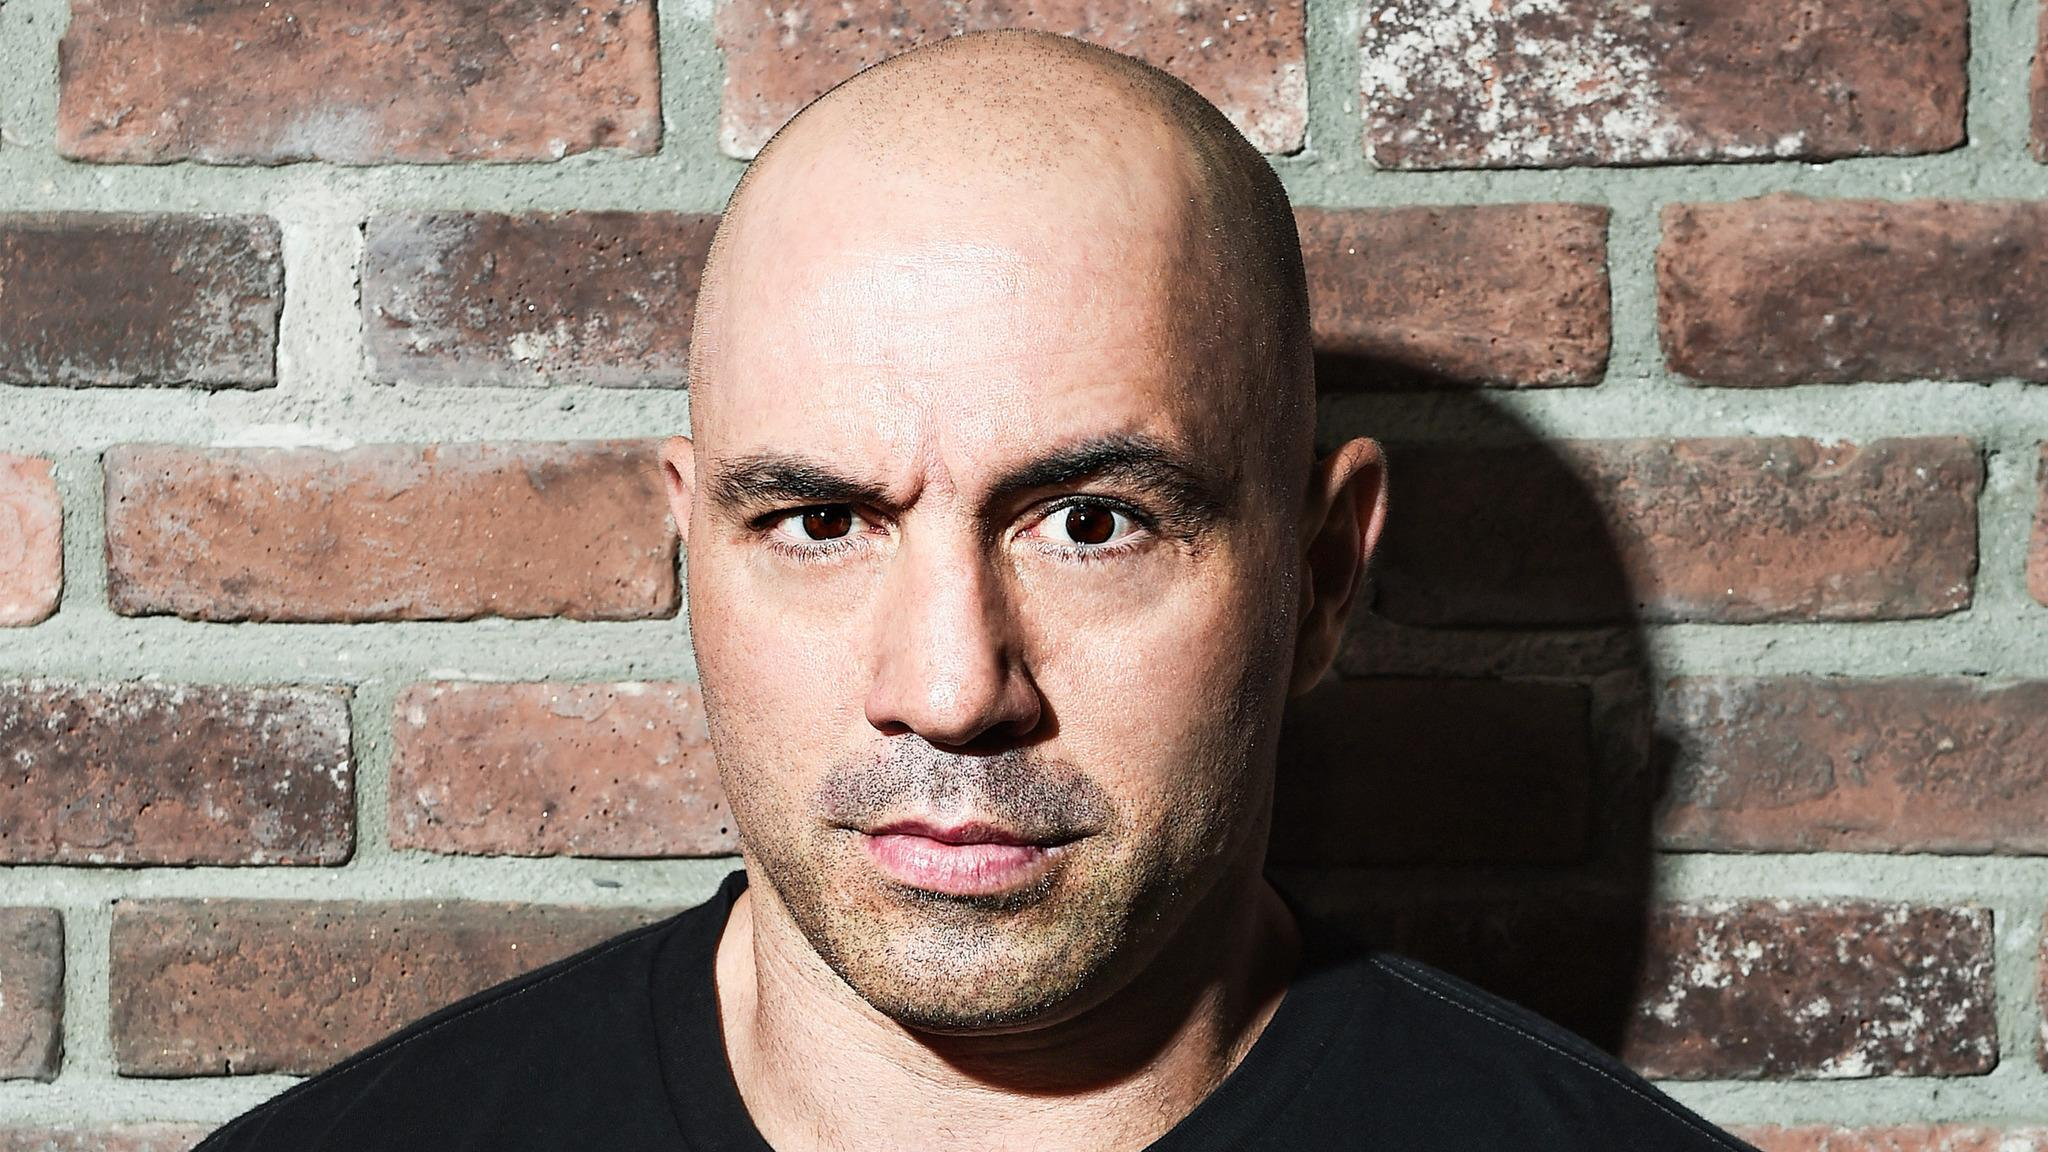 Joe Rogan: Strange Times New Years Eve Show at The Wiltern - Los Angeles, CA 90010